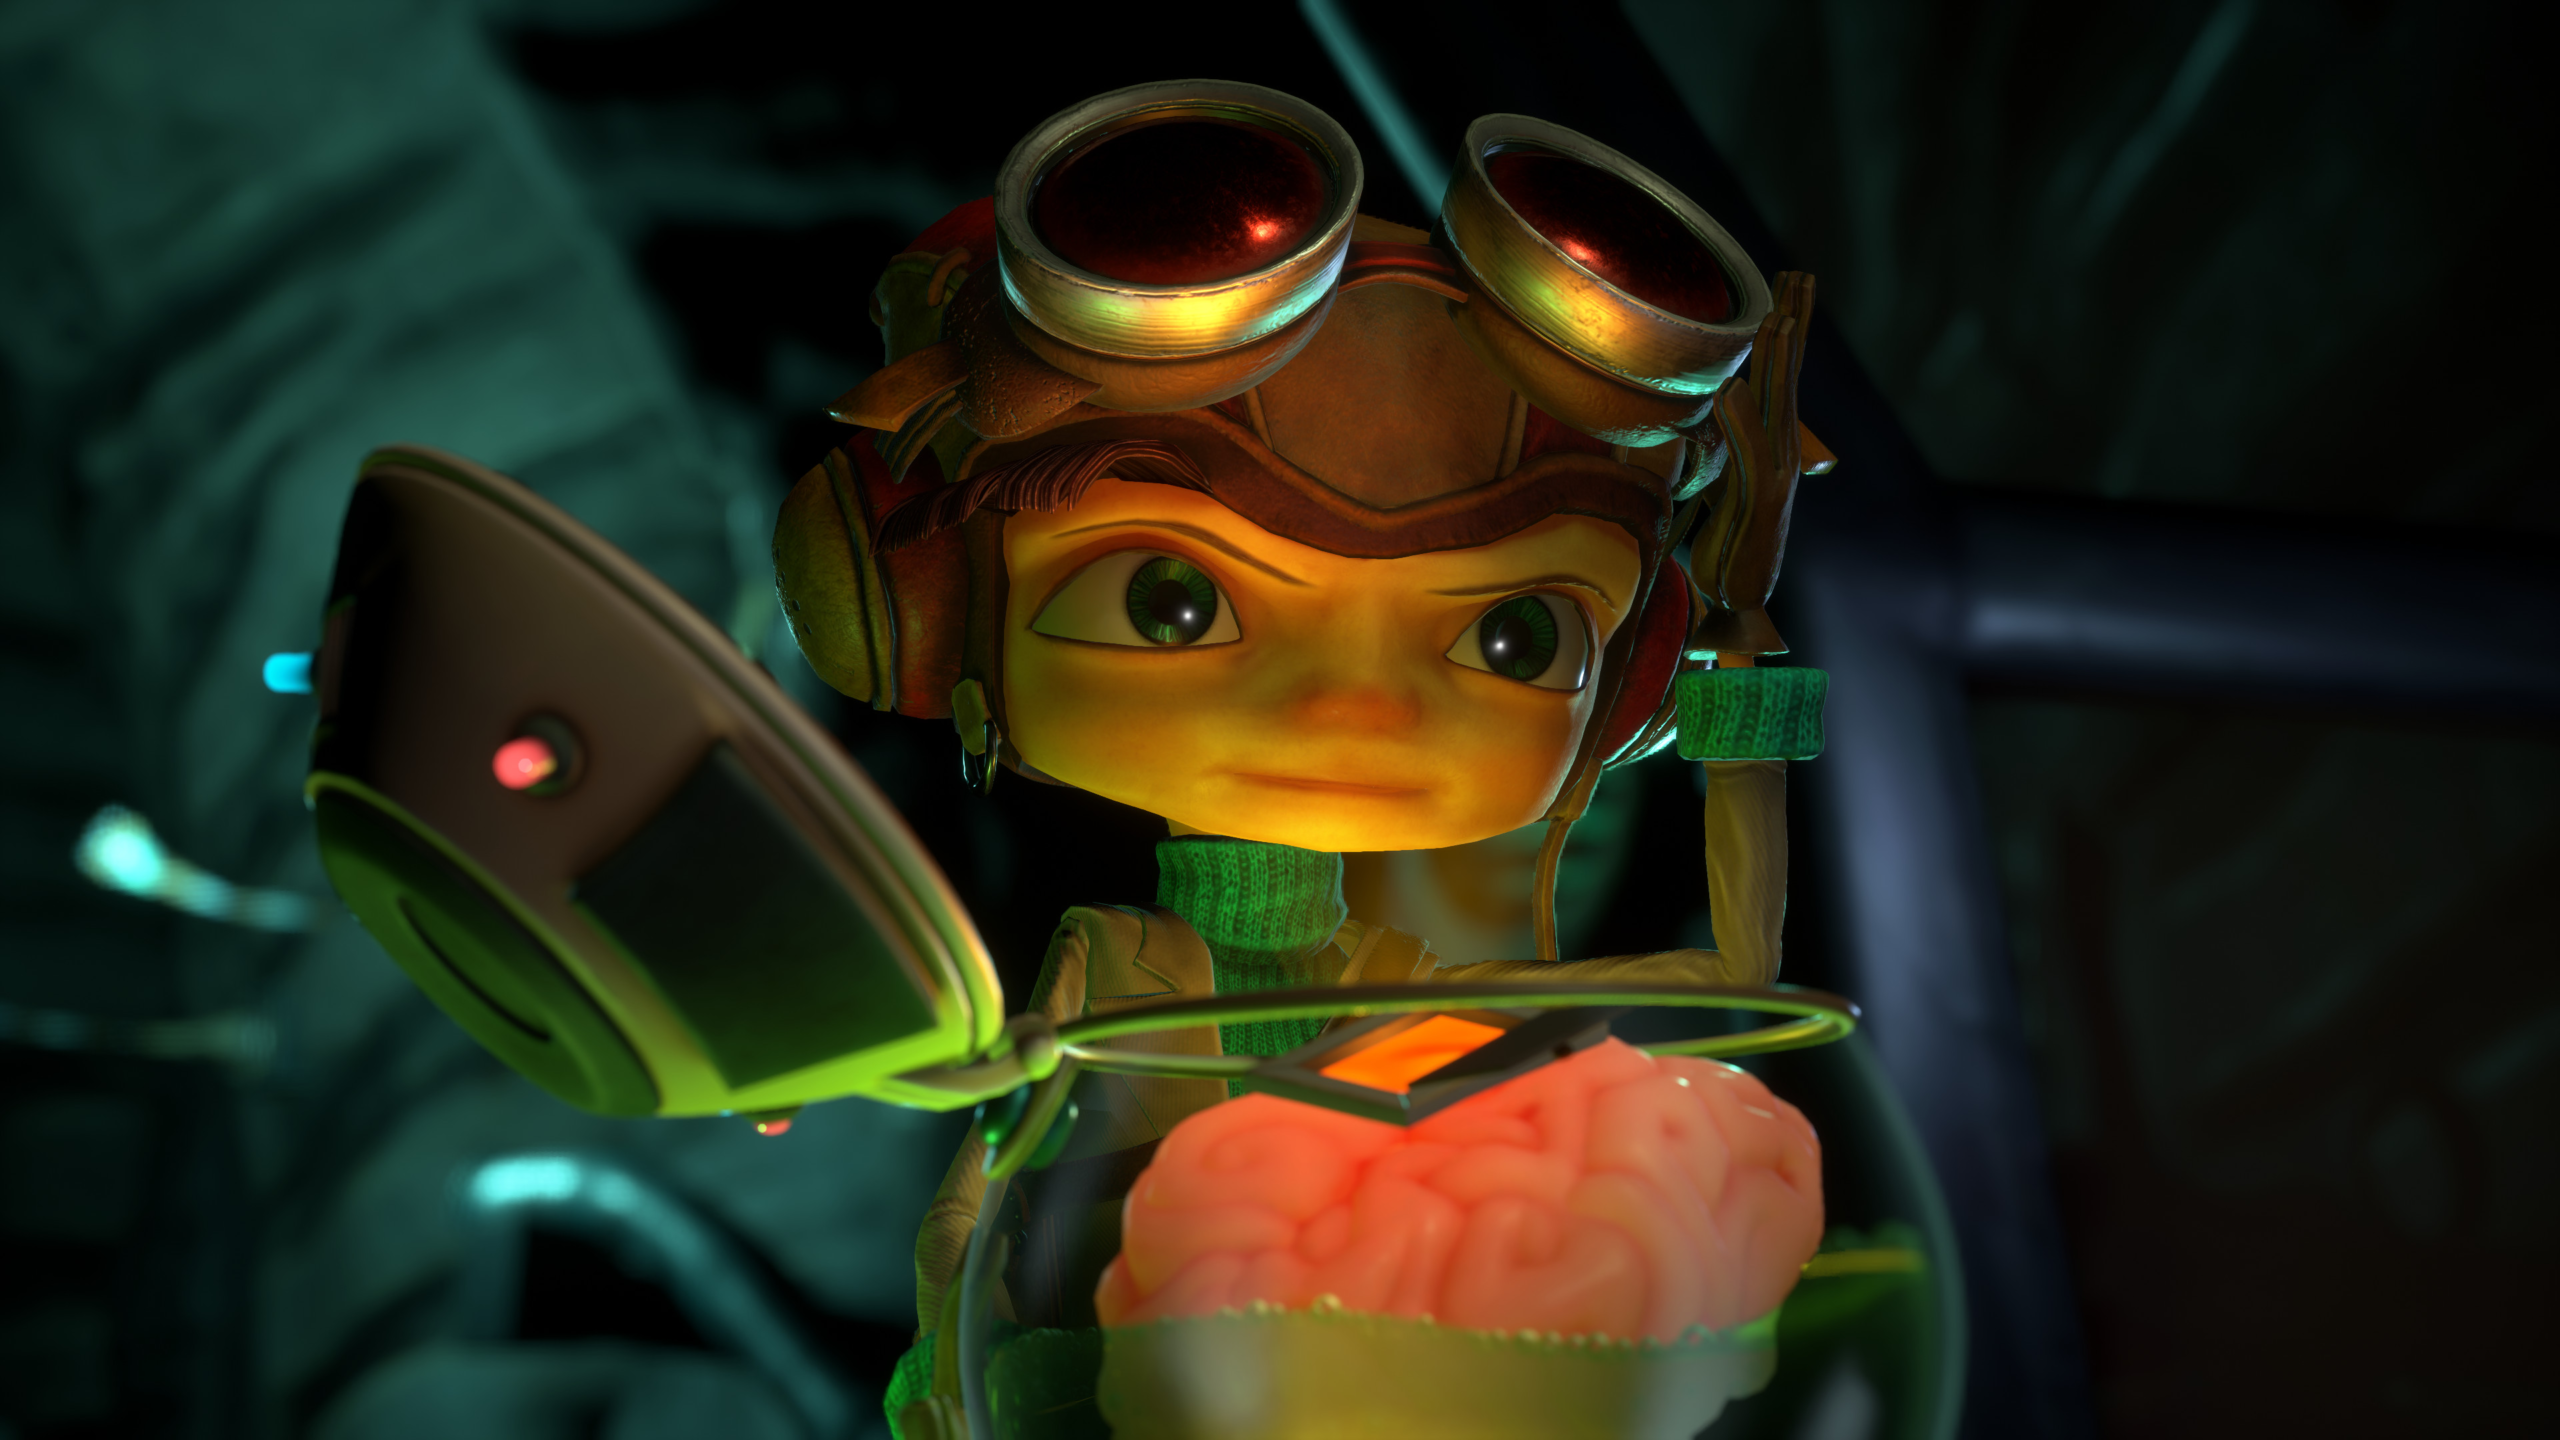 Psychonauts 2 preview, an interview with Double Fine's Tim Schafer